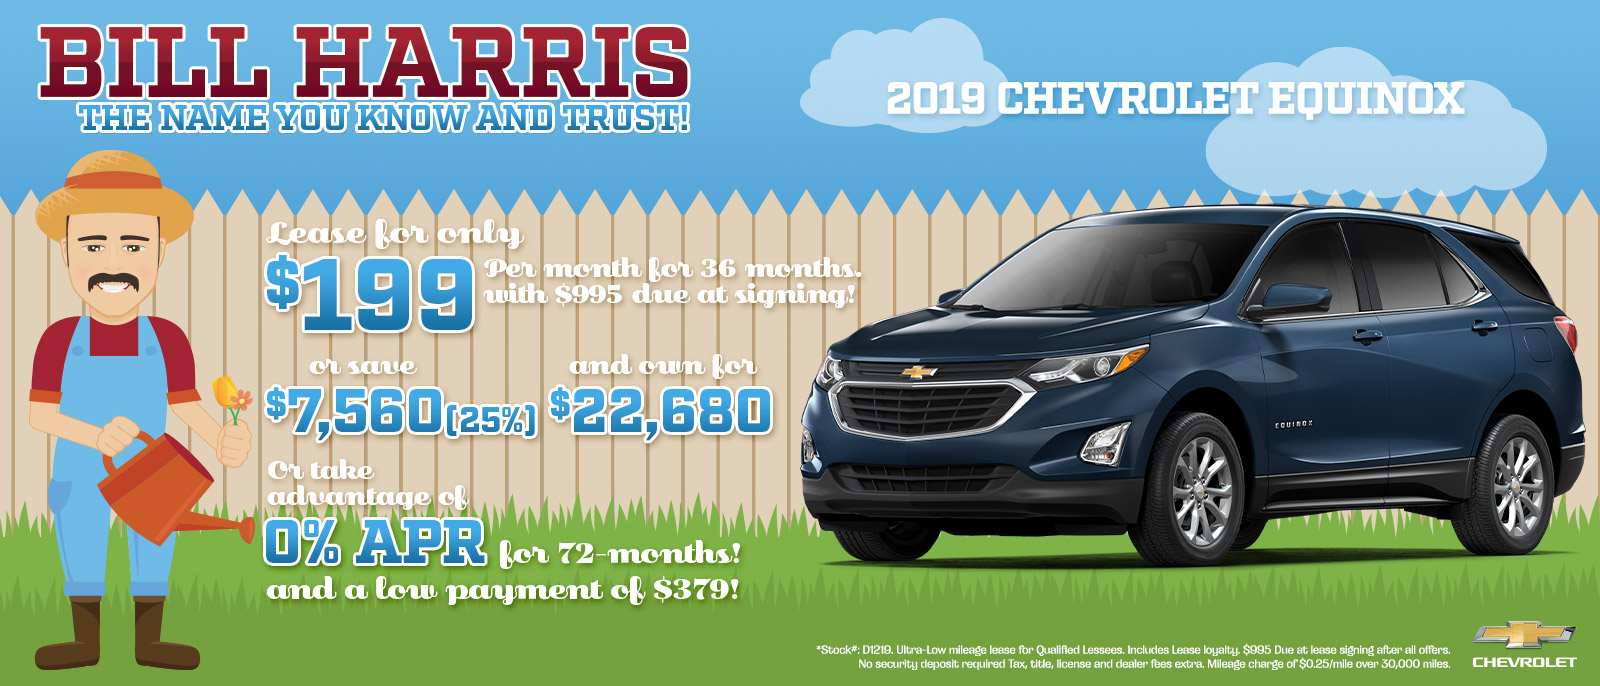 2019 Chevy Equinox Savings